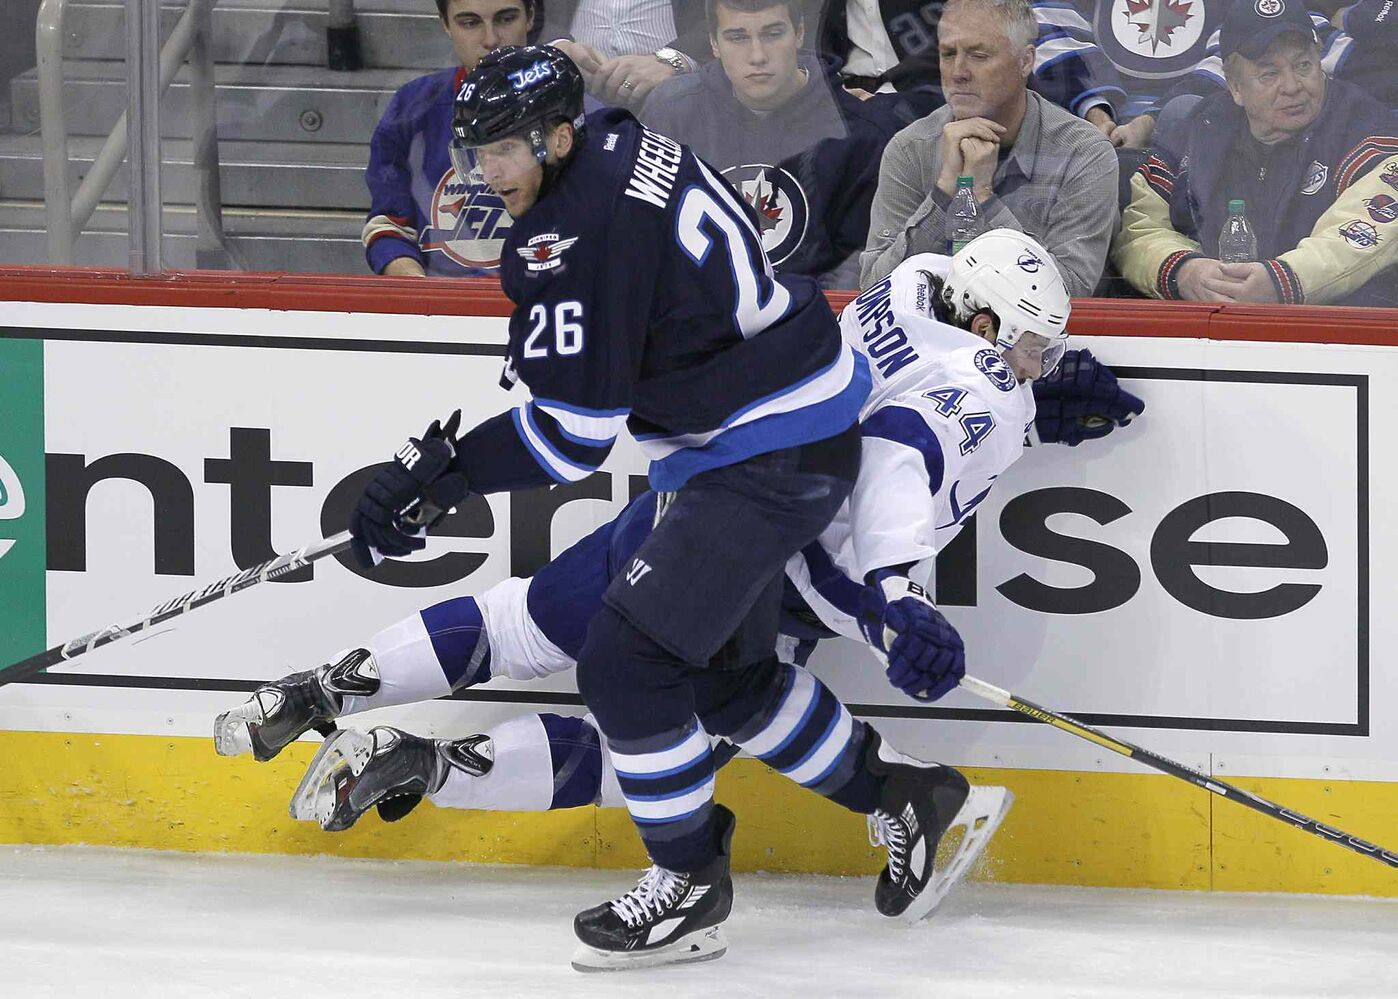 Winnipeg Jets' Blake Wheeler (26) checks Tampa Bay Lightning's Nate Thompson (44) during first period NHL action in Winnipeg Tuesday.